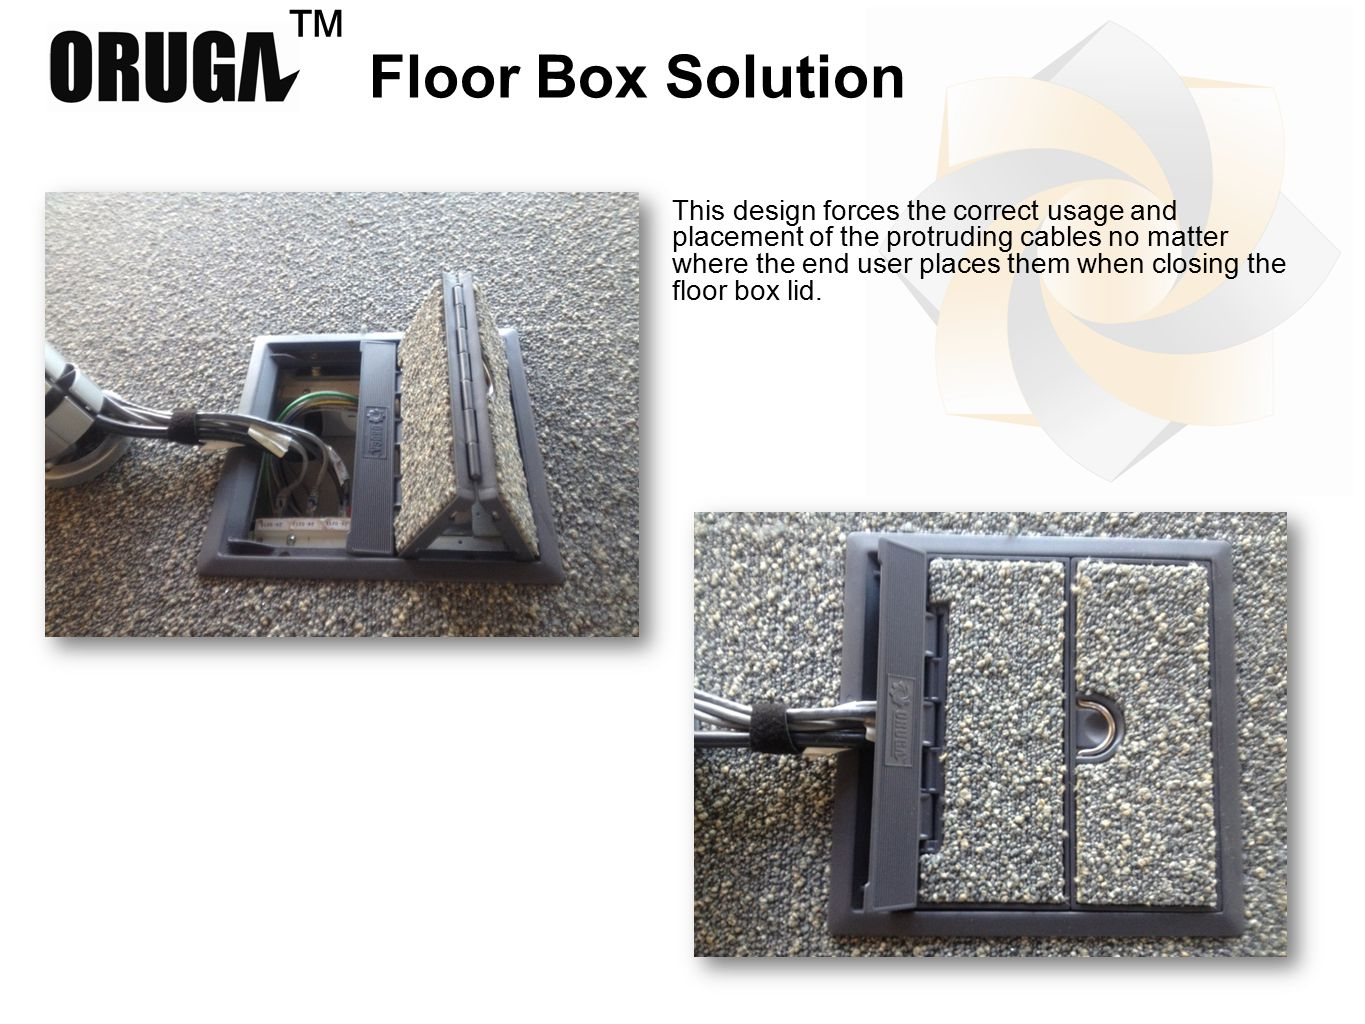 ™ Floor Box Solution This design forces the correct usage and placement of the protruding cables no matter where the end user places them when closing the floor box lid.